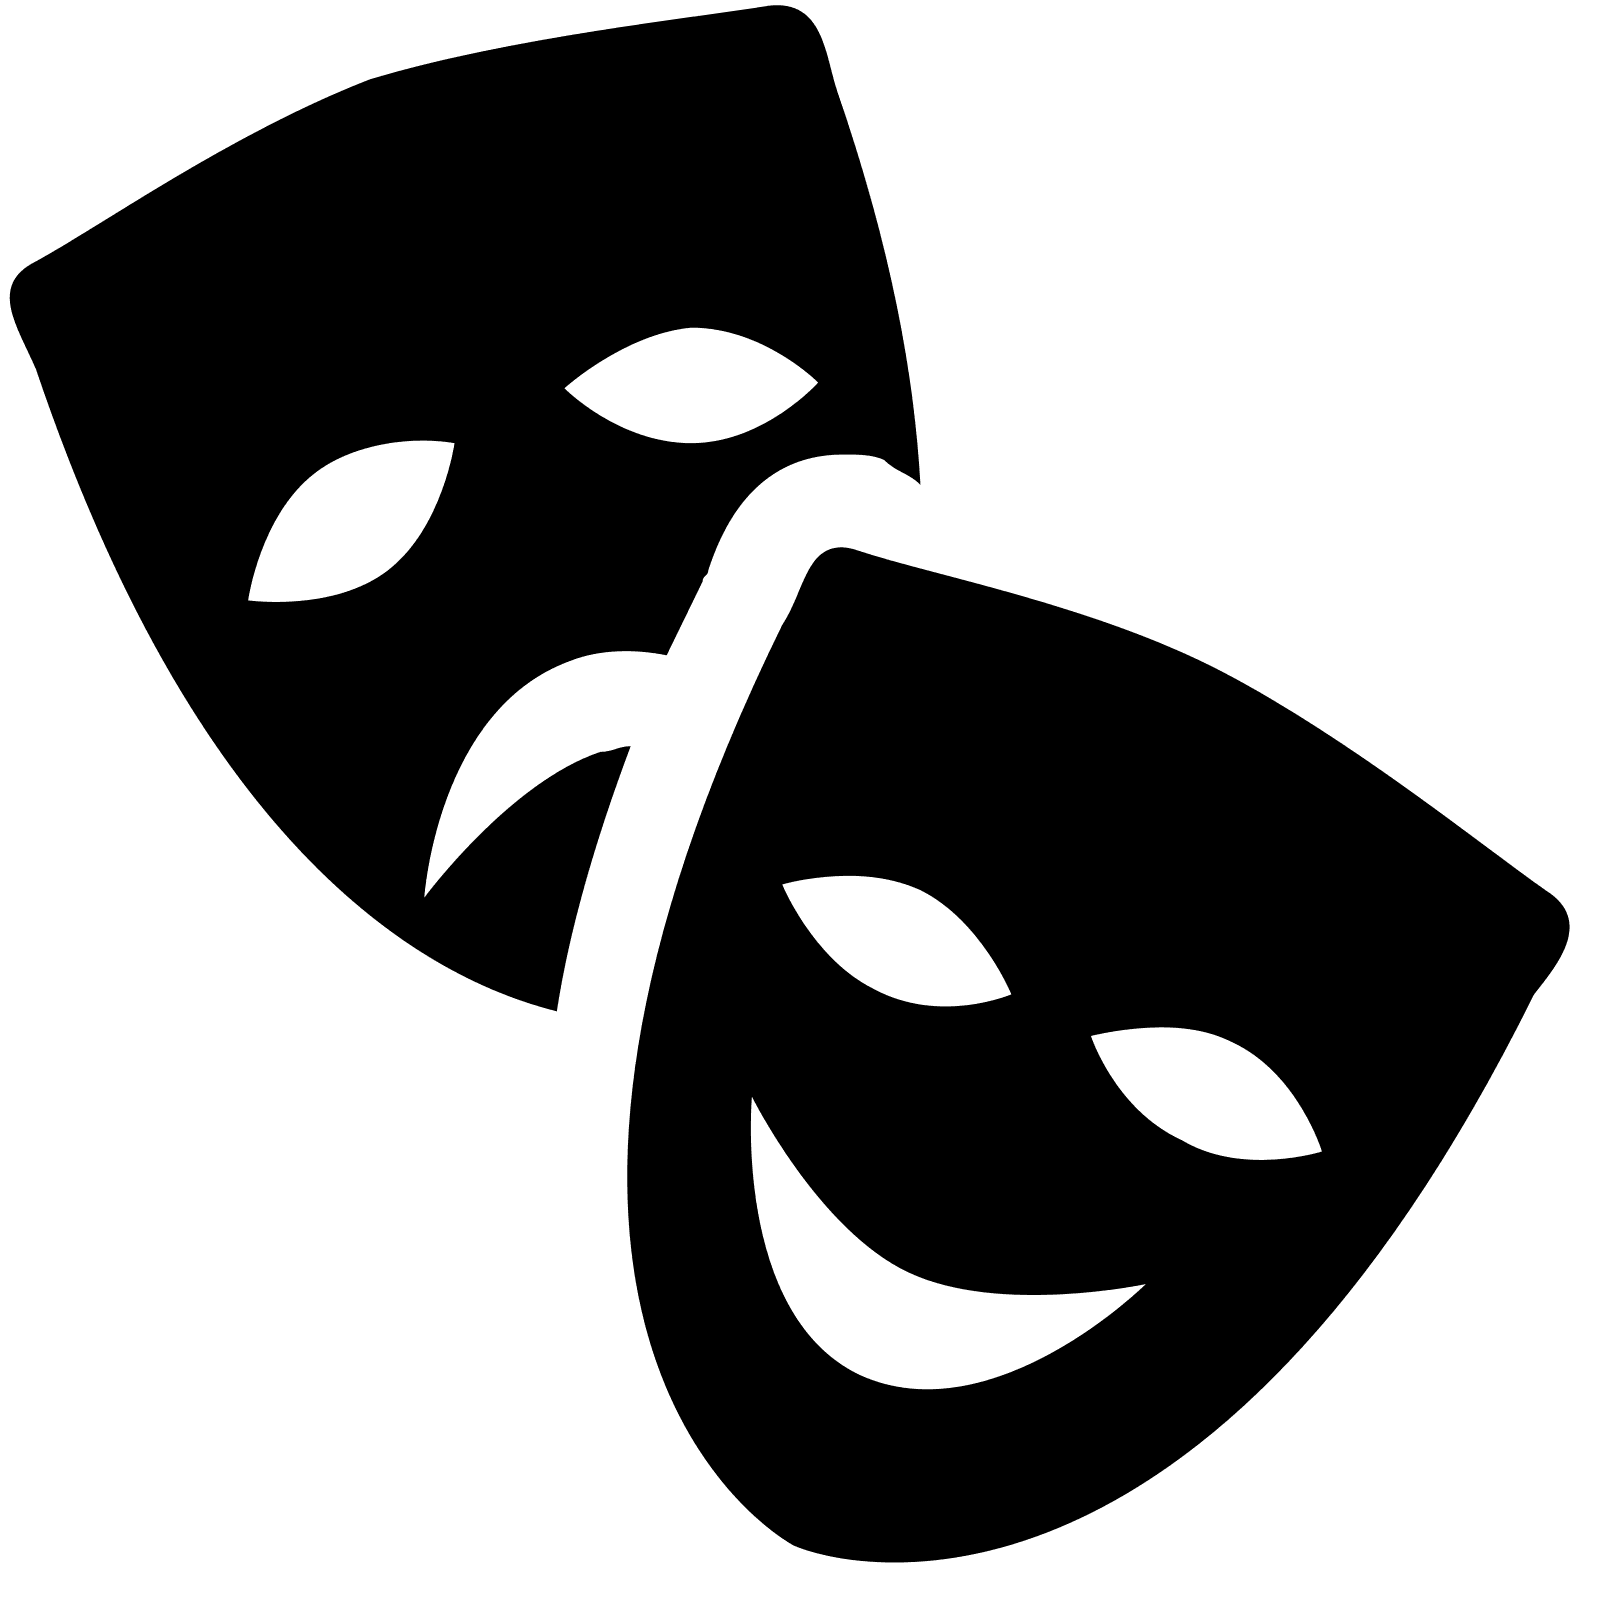 PNG Theatre Transparent Theatre.PNG Images..